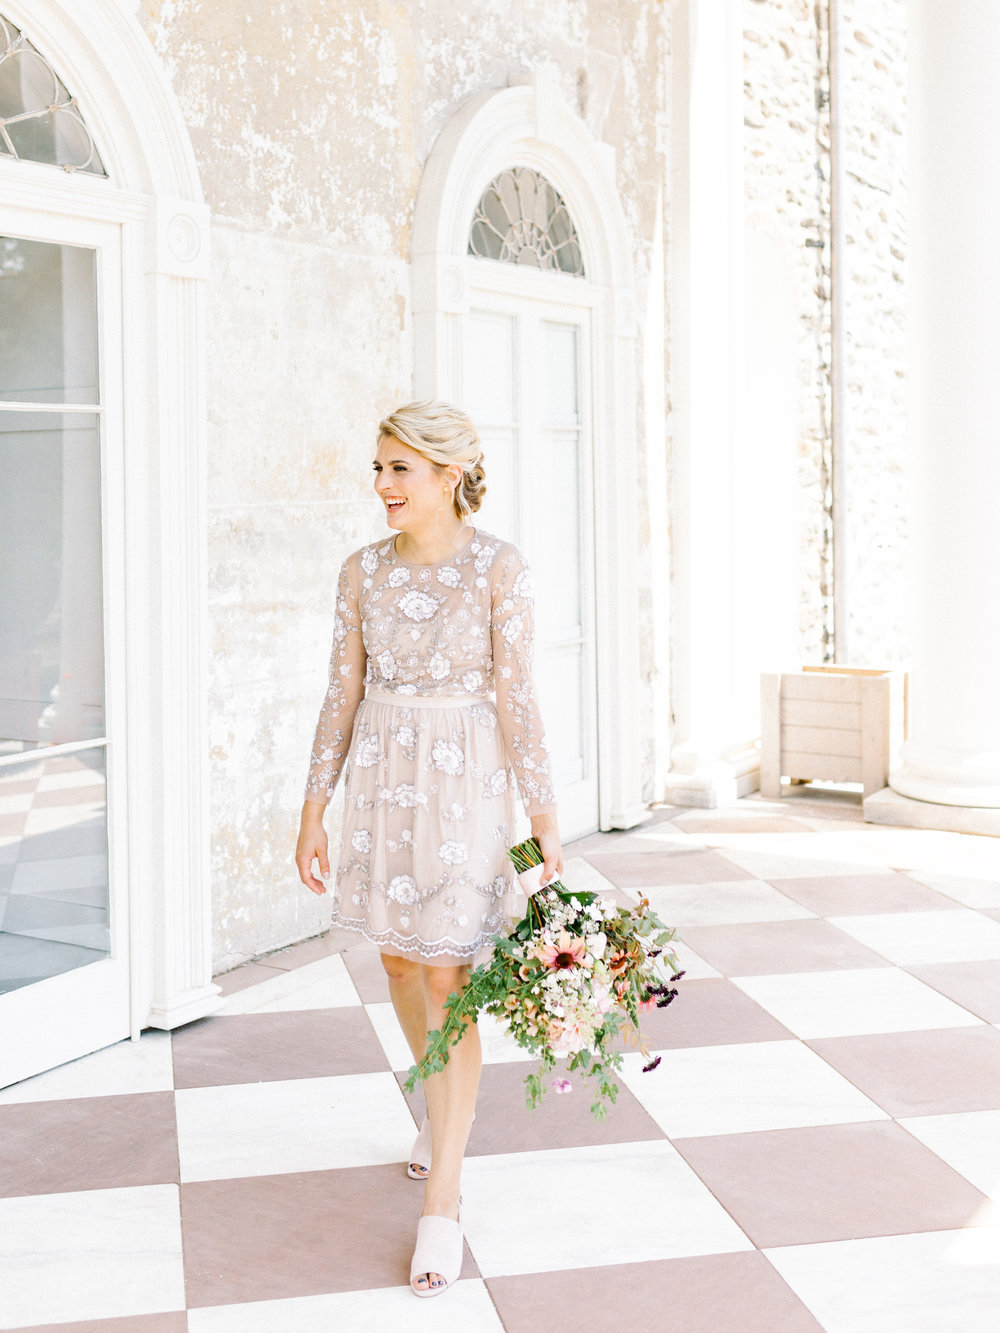 Full of smiles and laughs, Emily looked so pretty in this summer blush beaded BHLDN wedding dress from our whimsical elopement wedding inspiration shoot at the Woodlands Mansion in Philadelphia.